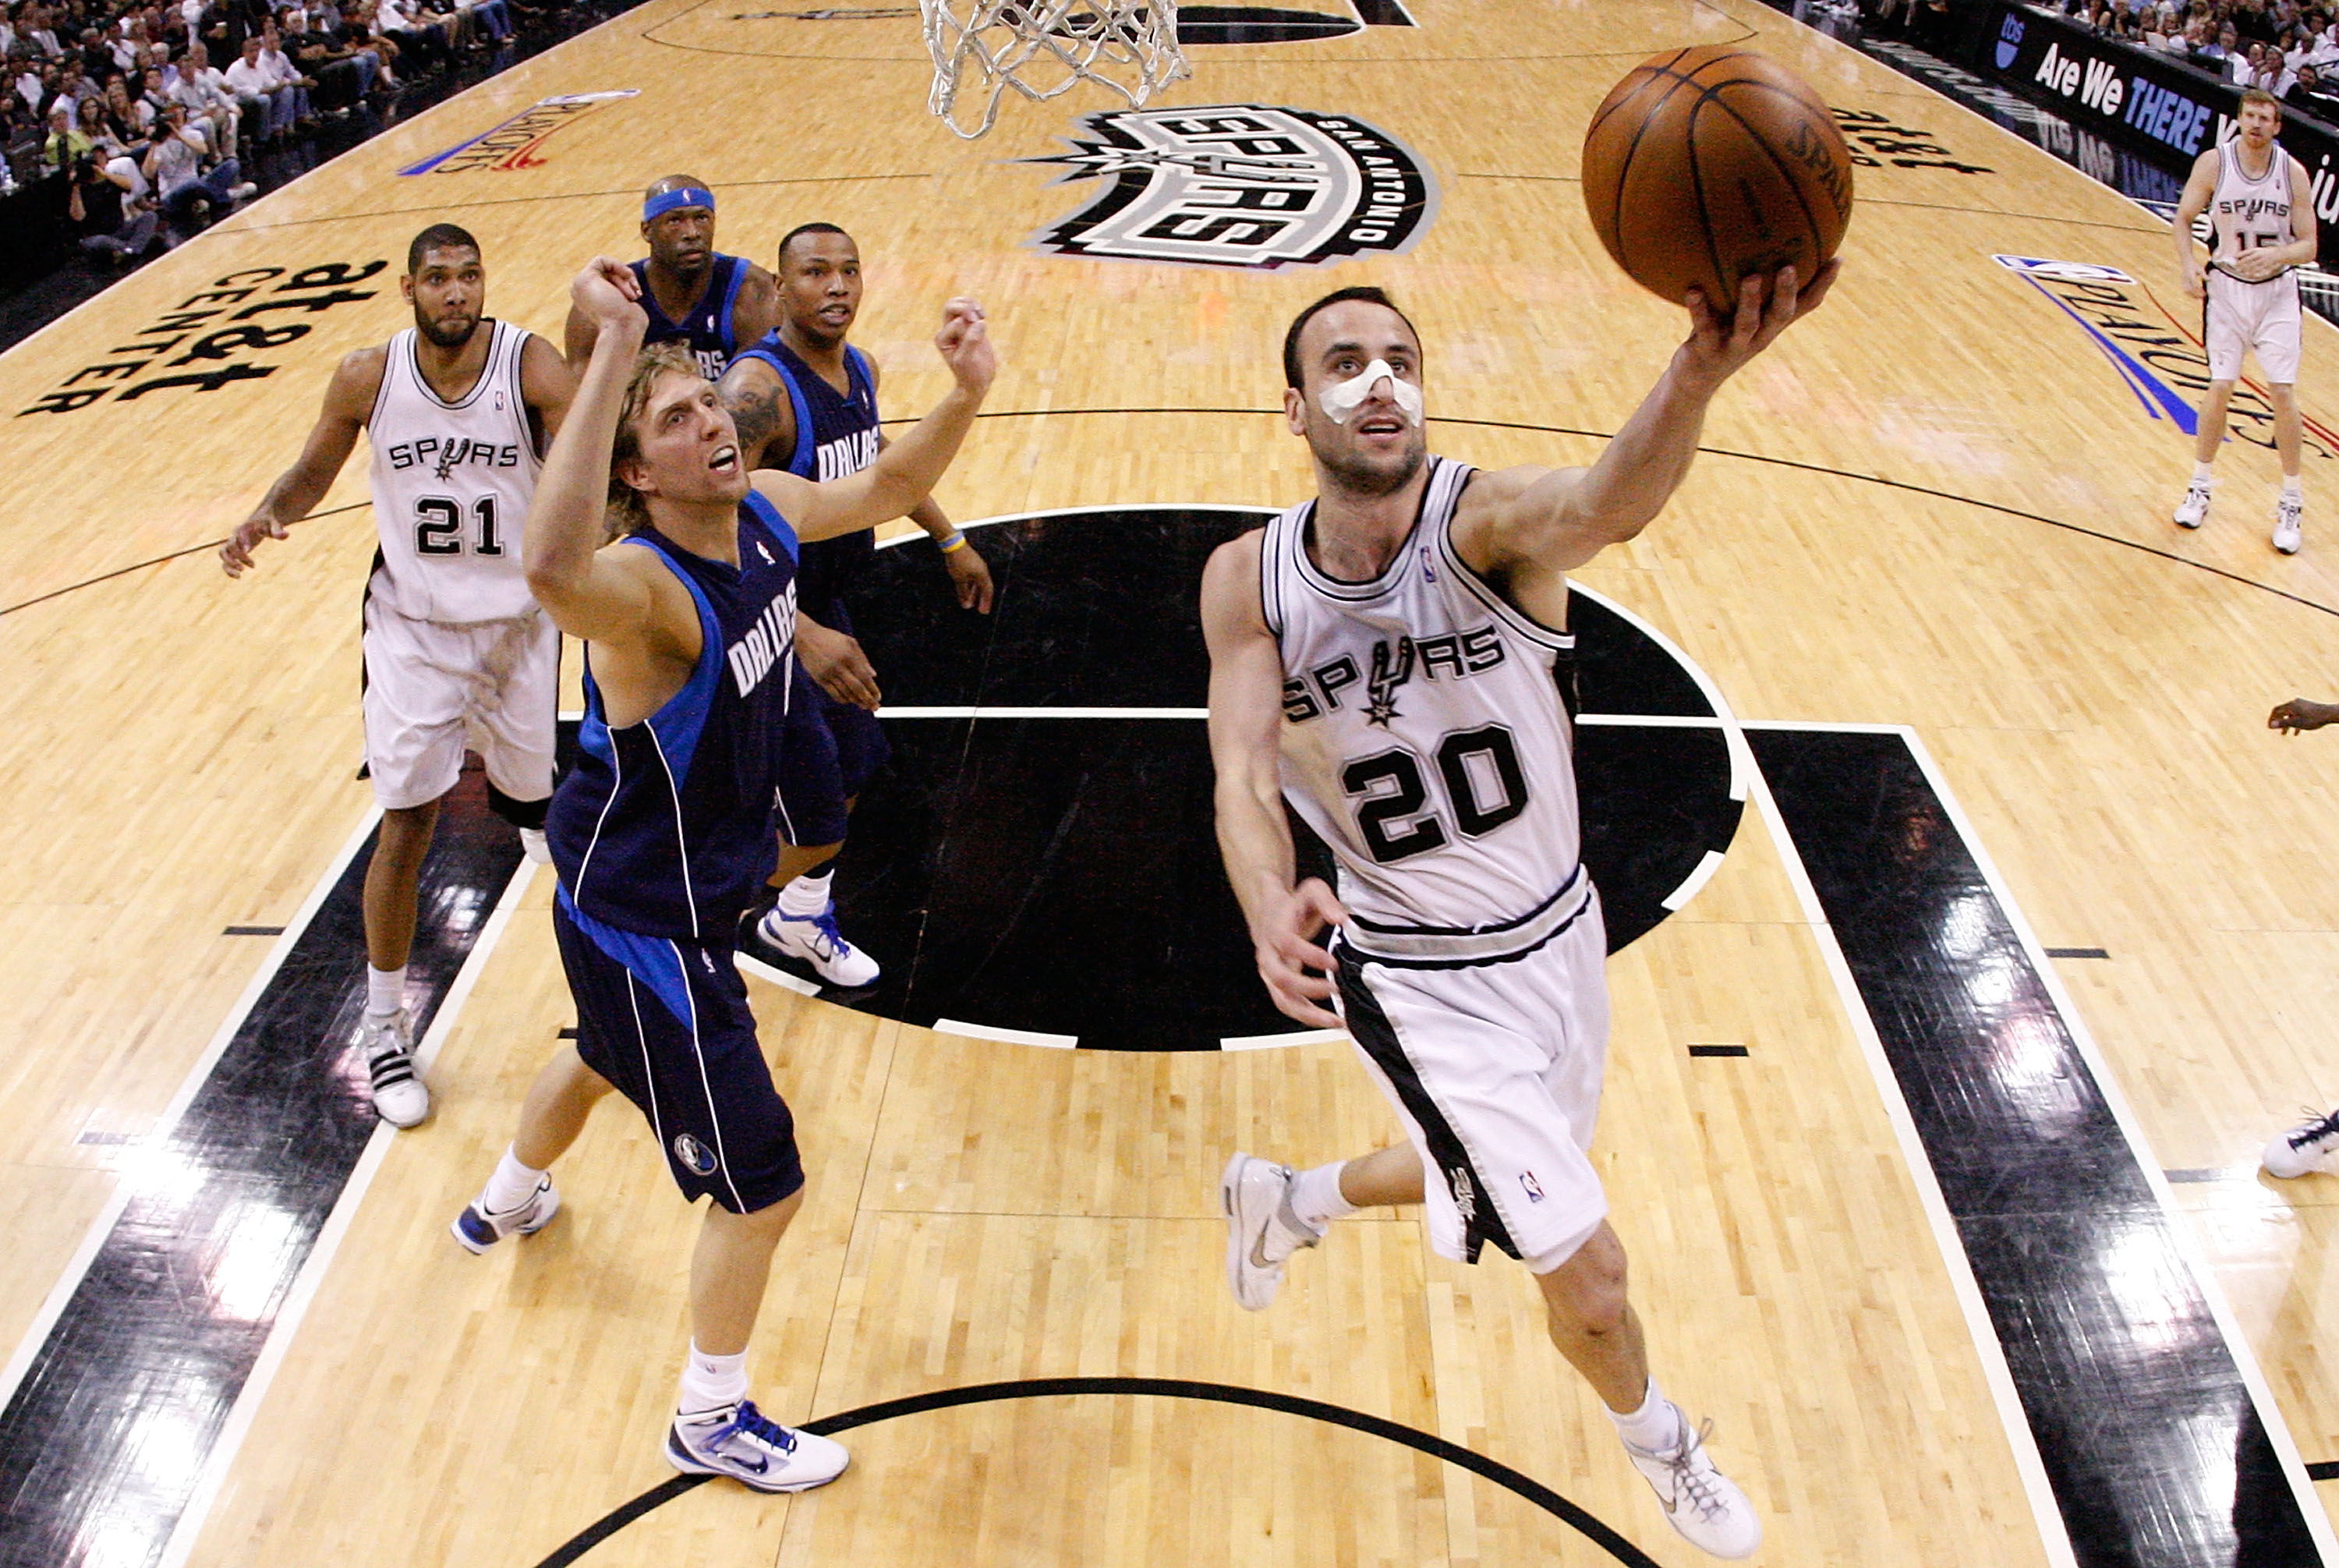 SAN ANTONIO - APRIL 29:  Guard Manu Ginobili #20 of the San Antonio Spurs takes a shot against Dirk Nowitzki #41 of the Dallas Mavericks in Game Six of the Western Conference Quarterfinals during the 2010 NBA Playoffs at AT&T Center on April 29, 2010 in S